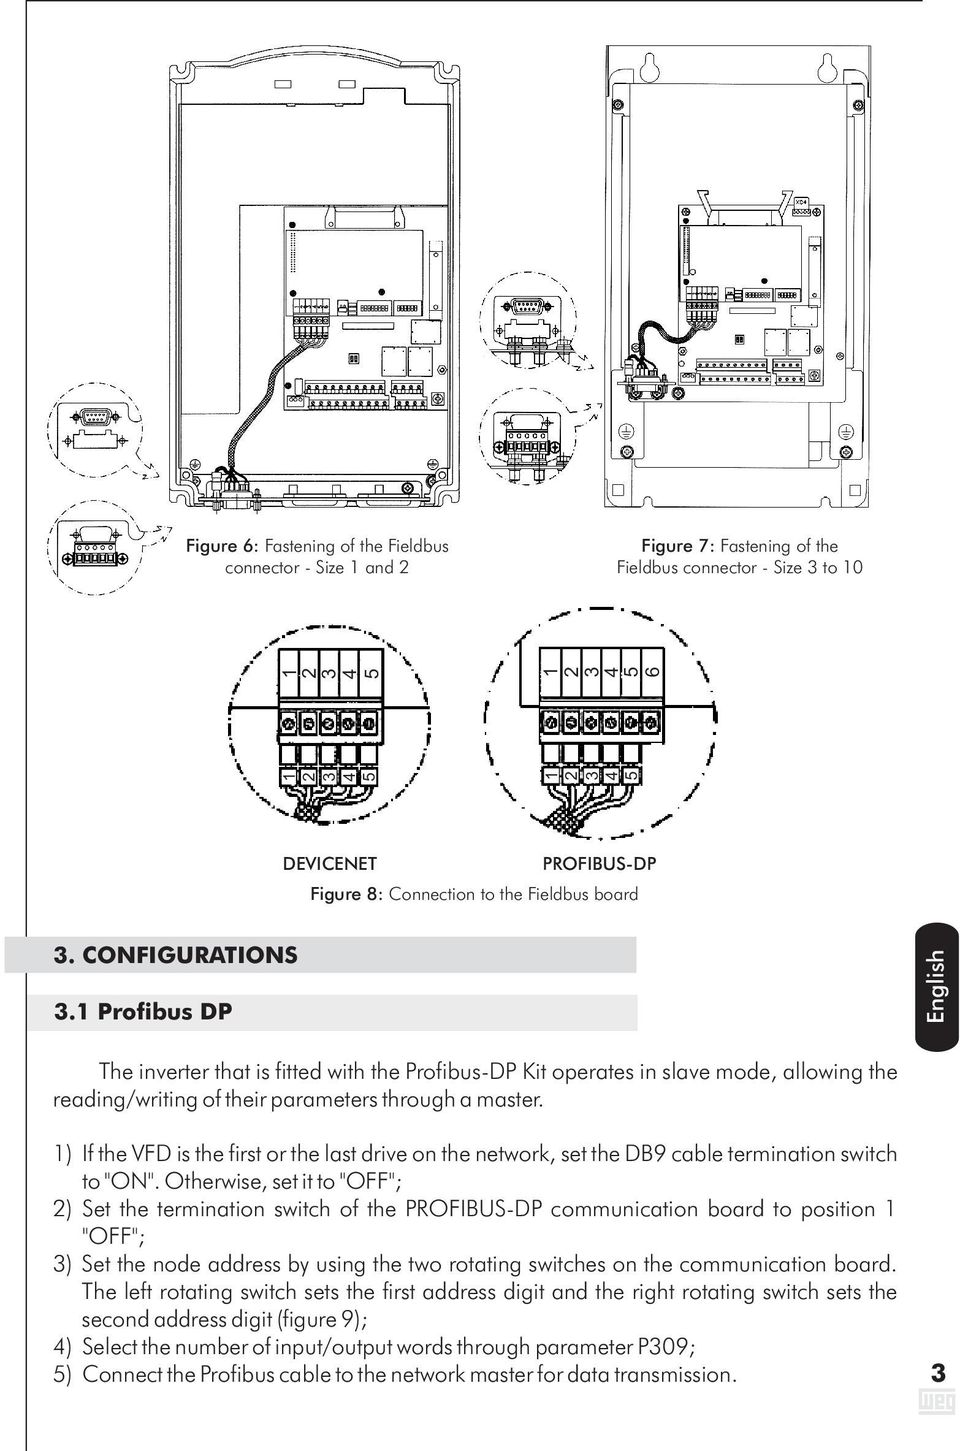 ") If the VFD is the first or the last drive on the network, set the DB9 cable termination switch to ""ON""."